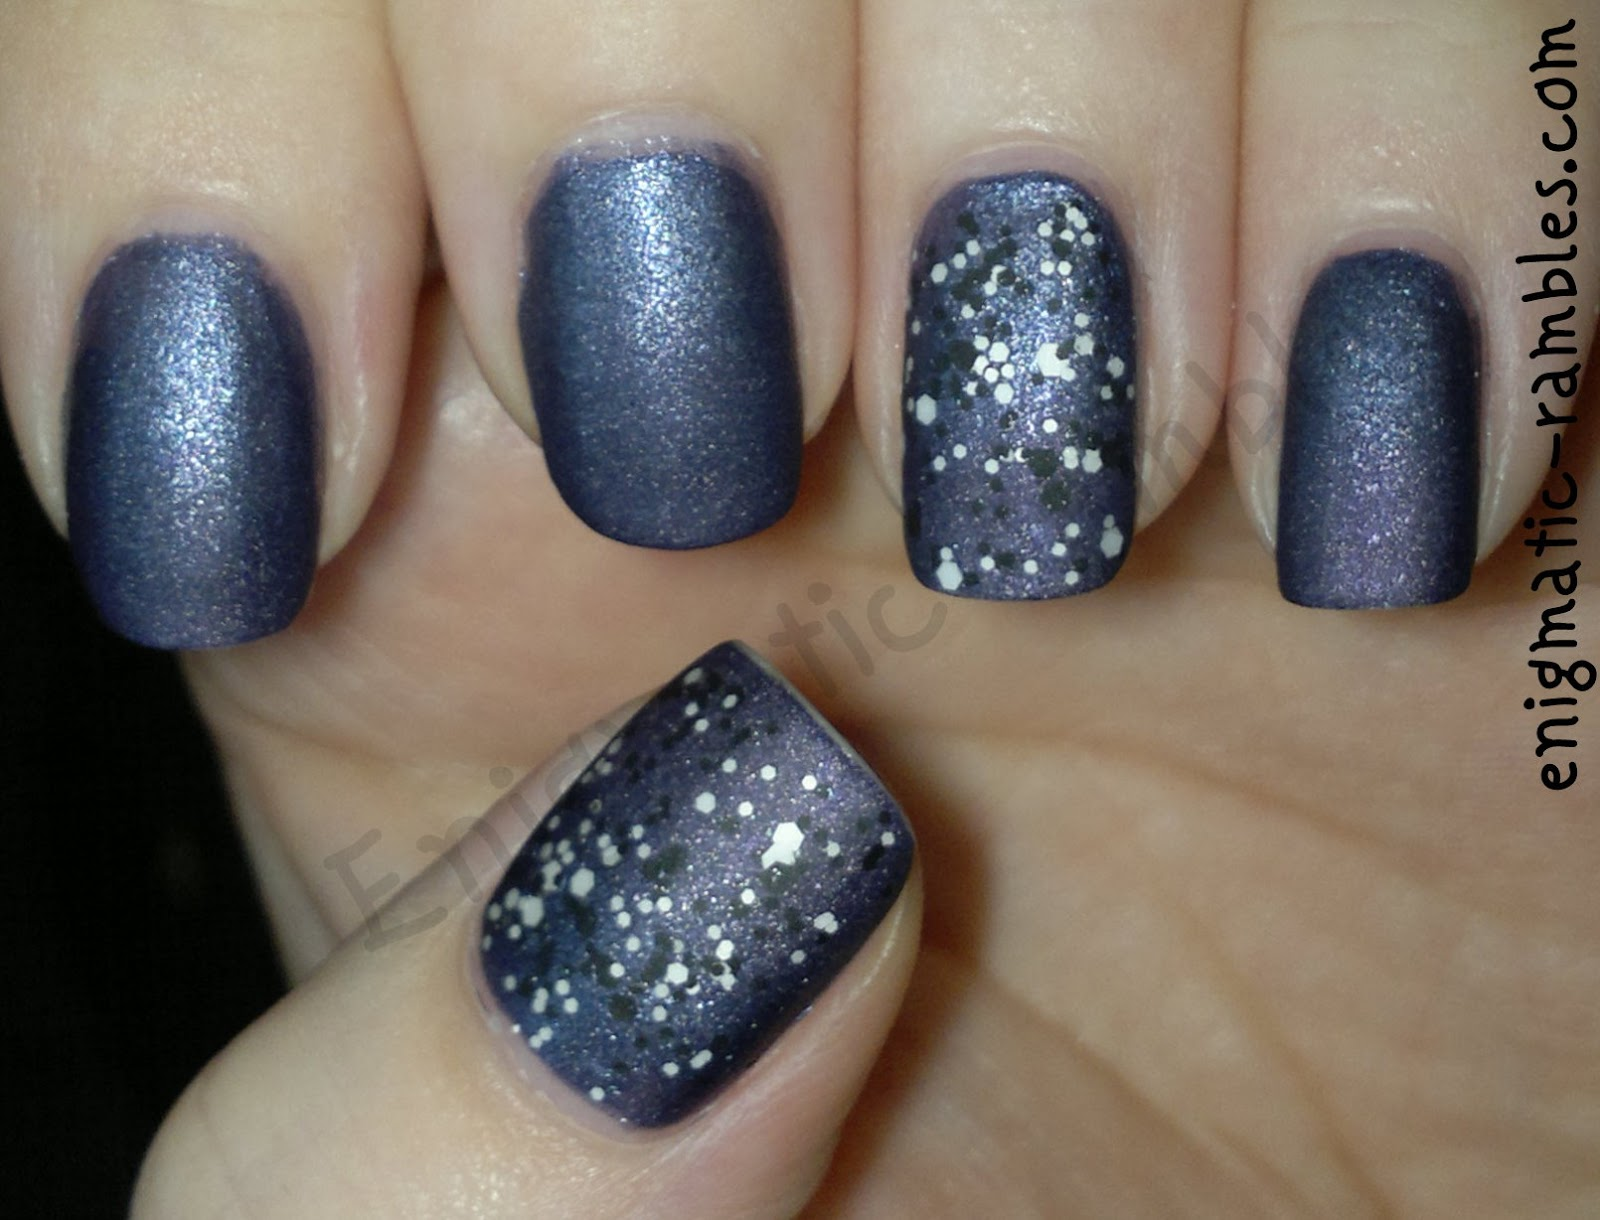 glossy-confetti-l'oreal-top-coat-max-factor-meteorite-41-a-england-lady-of-the-lake-matte-george